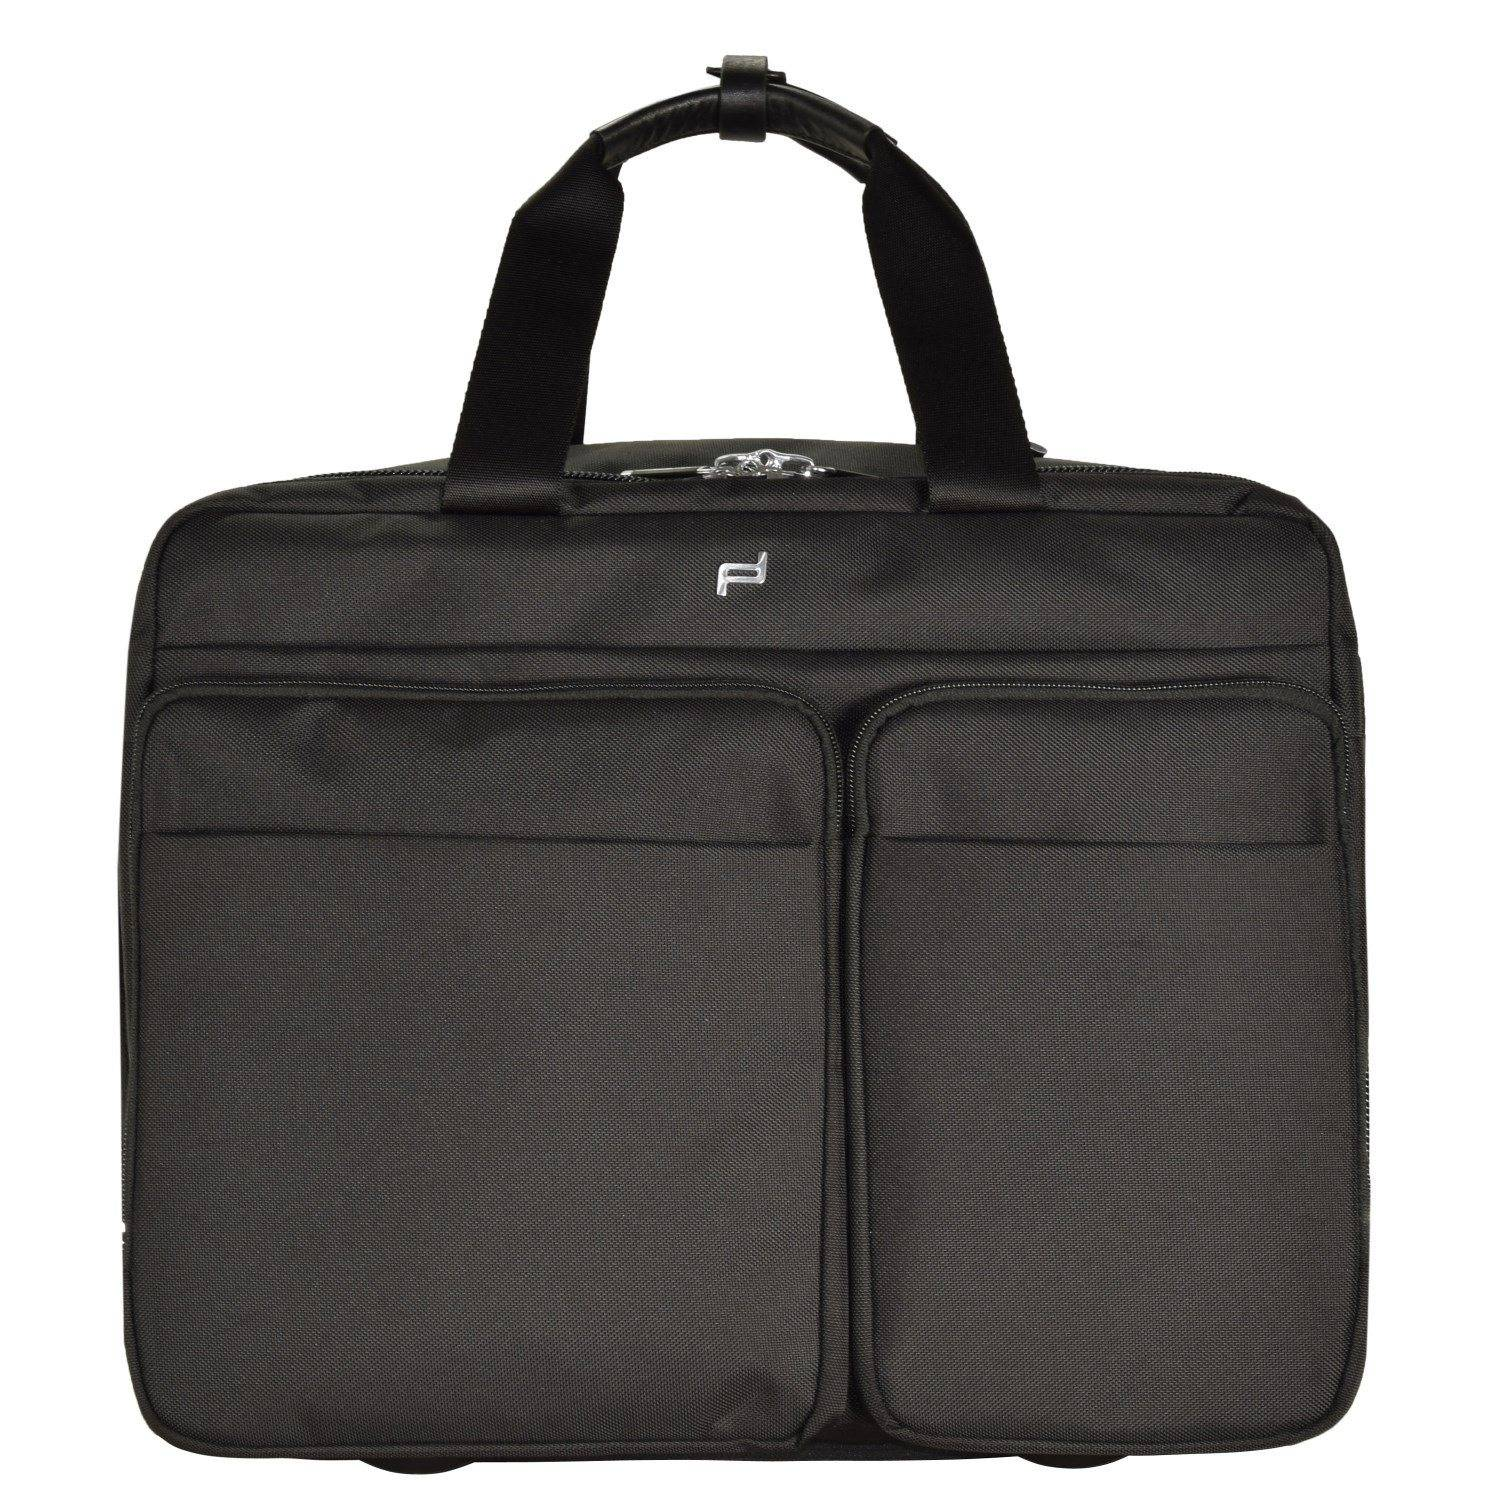 PORSCHE Design Roadster 3.0 Brief Bag M 2-Rollen Trolley 42 cm Laptopfach, black